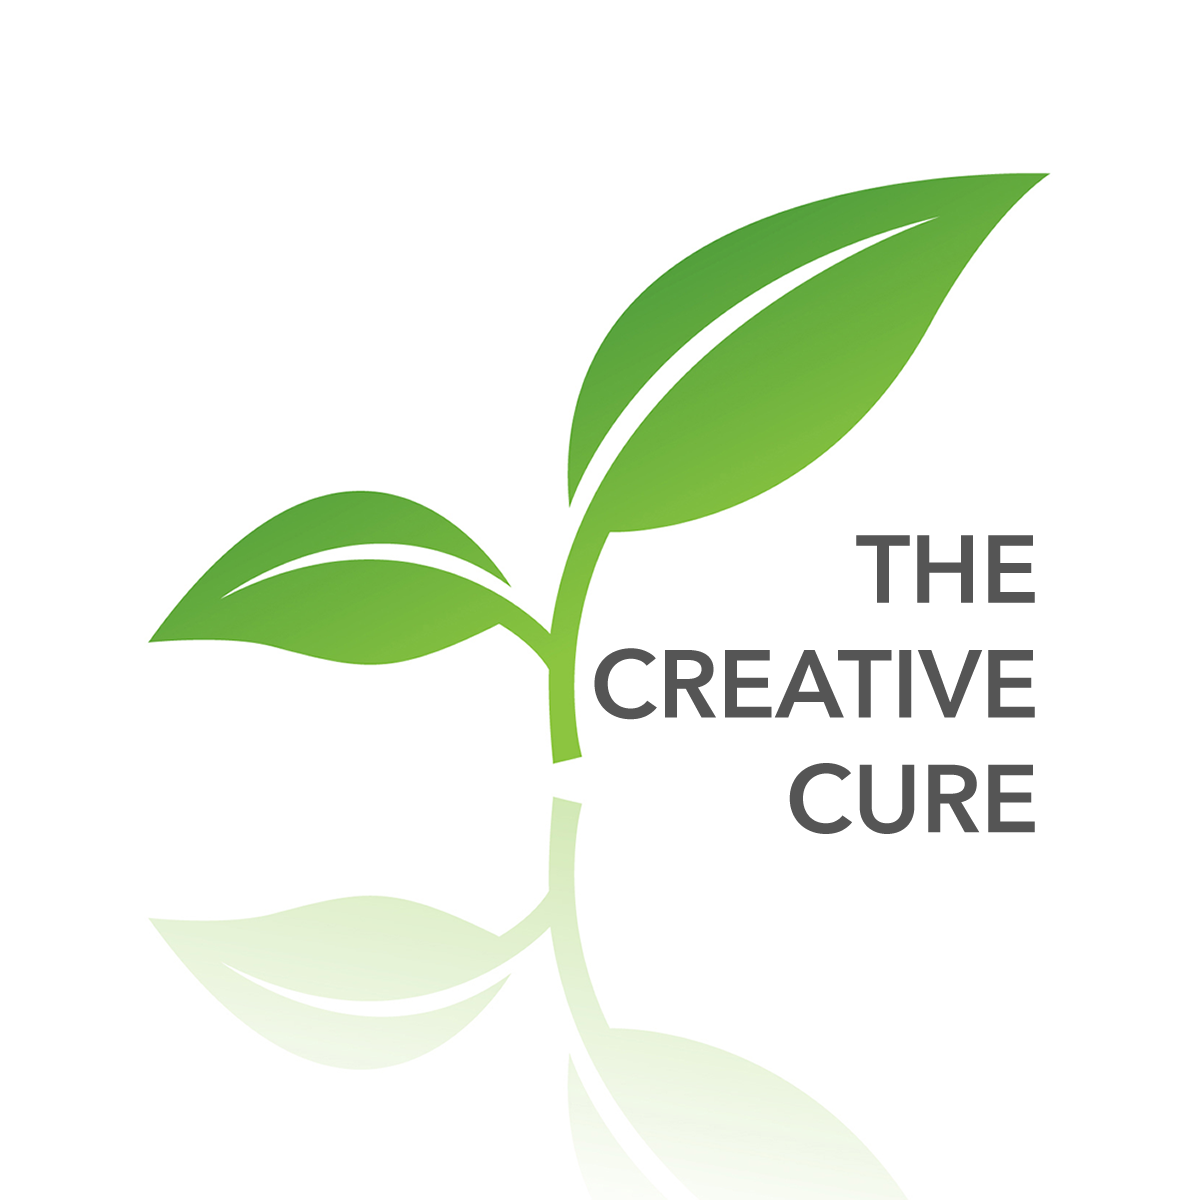 creative-cure-fb-profile-2.png